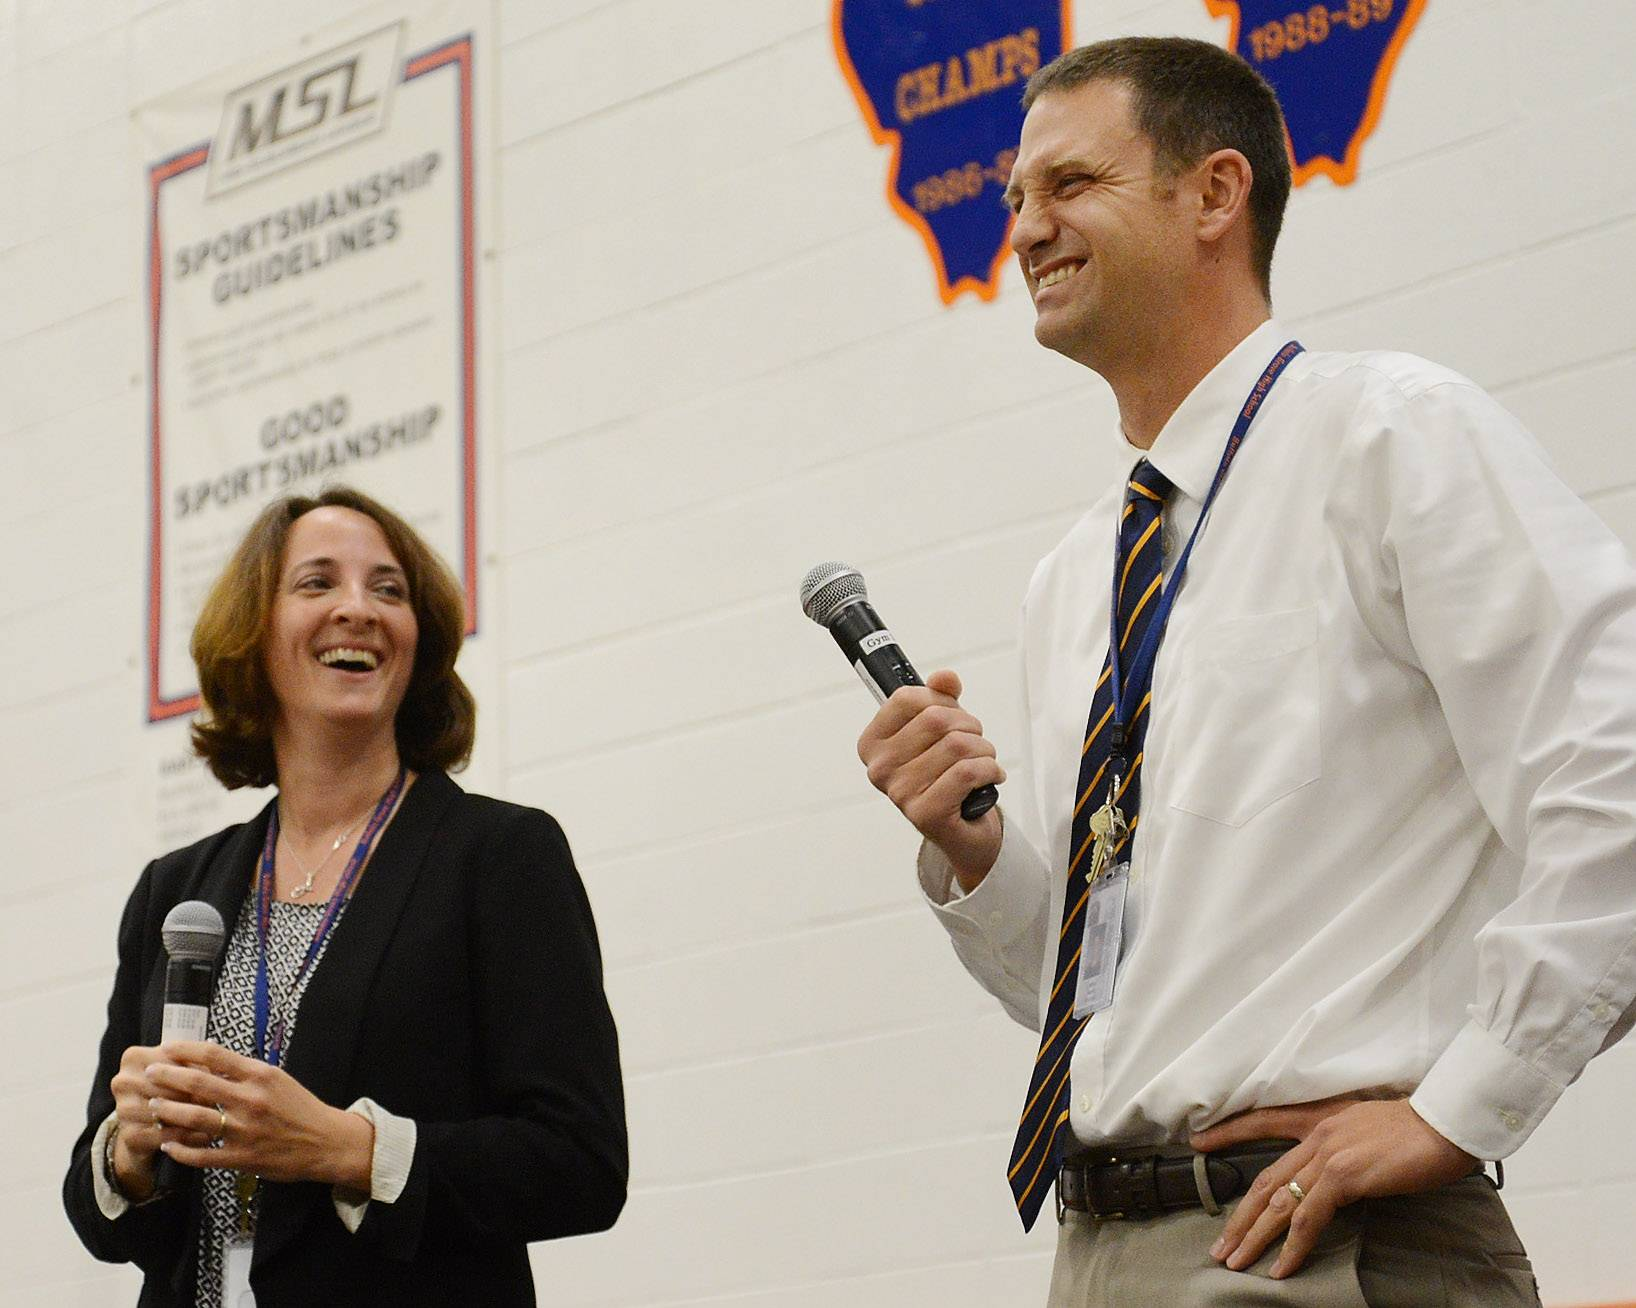 New principal Jeff Wardle, and associate principal Jill Maraldo, compete in a game show, answering questions about themselves and how much knowledge they have of Buffalo Grove High School, during a back-to-school pep rally Wednesday.